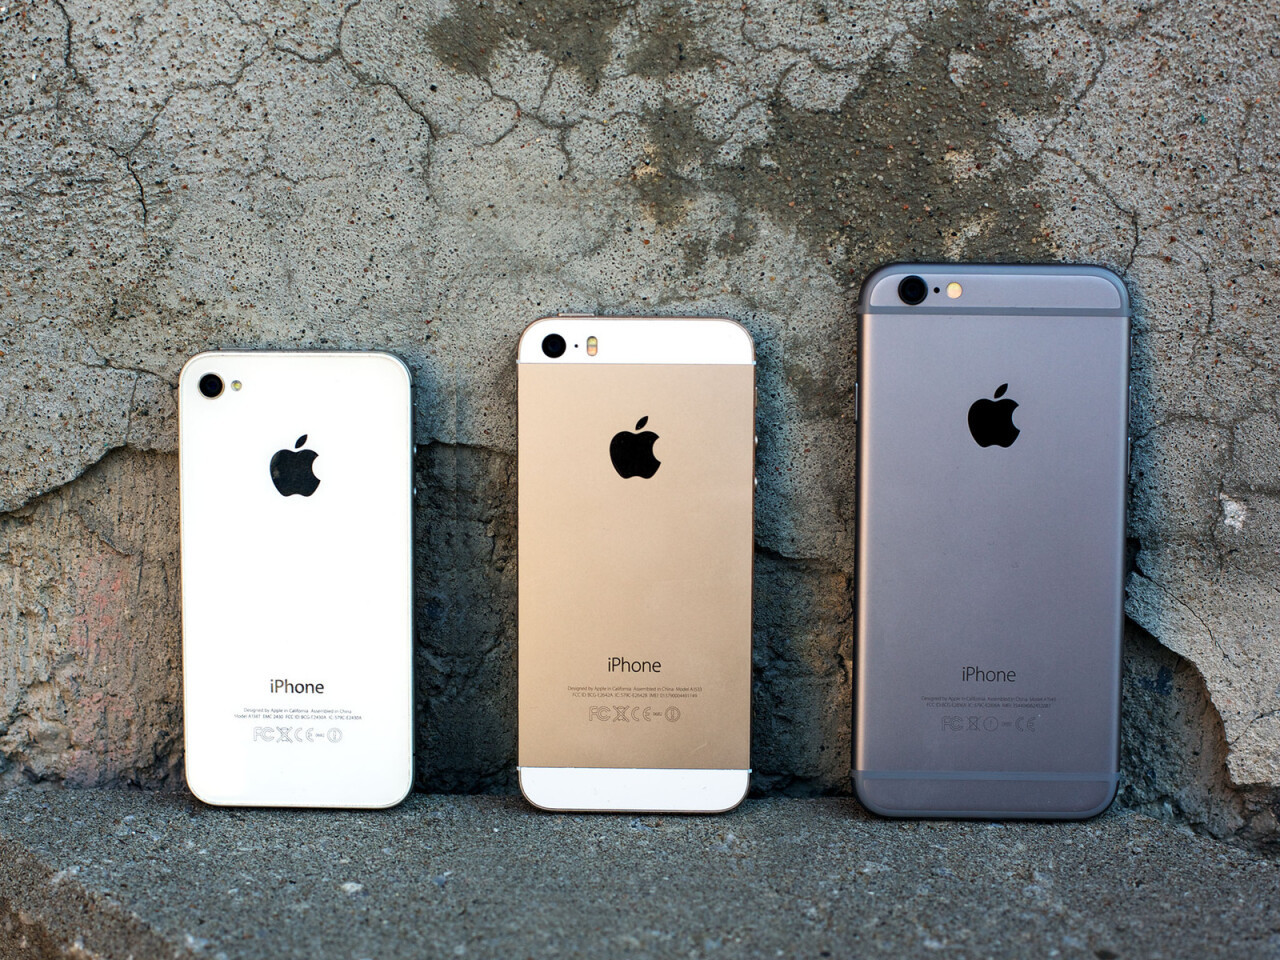 iphone-4s_iphone_5s_iphone_6_back_lineup_1.jpg